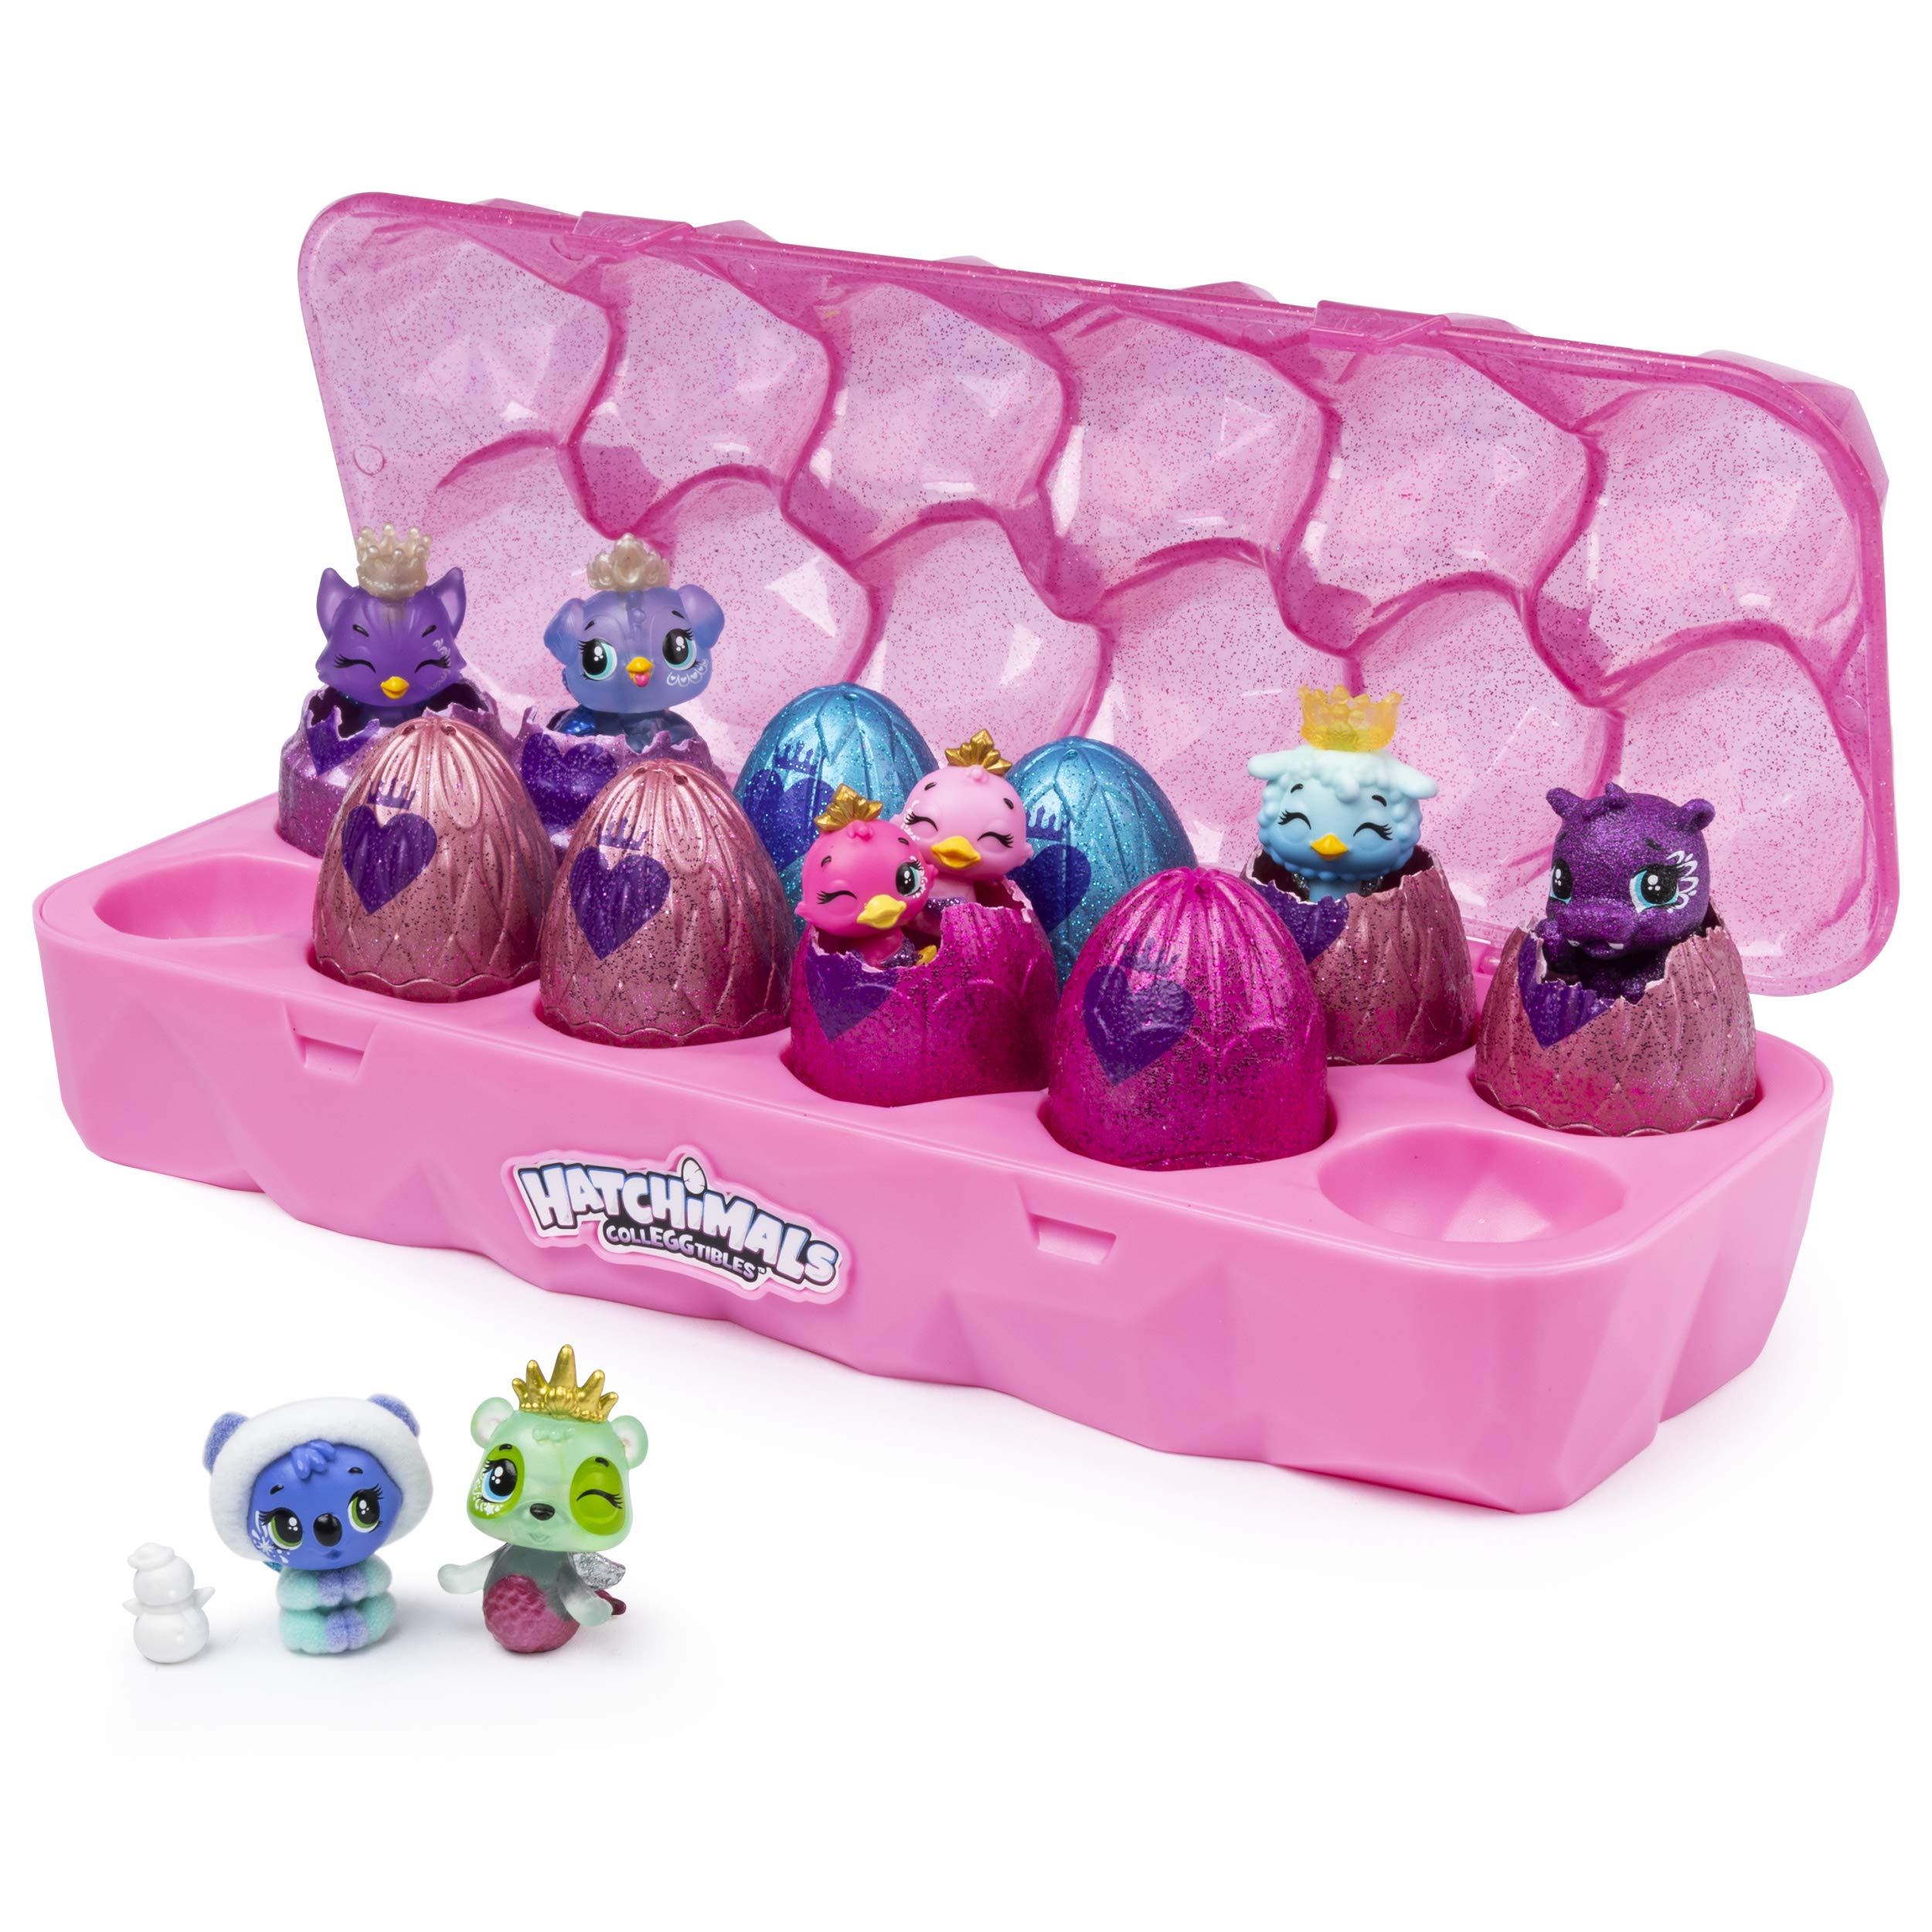 Hatchimals Colleggtibles, Jewelry Box Royal Dozen 12 Pack Egg Carton with 2 Exclusive by Hatchimals